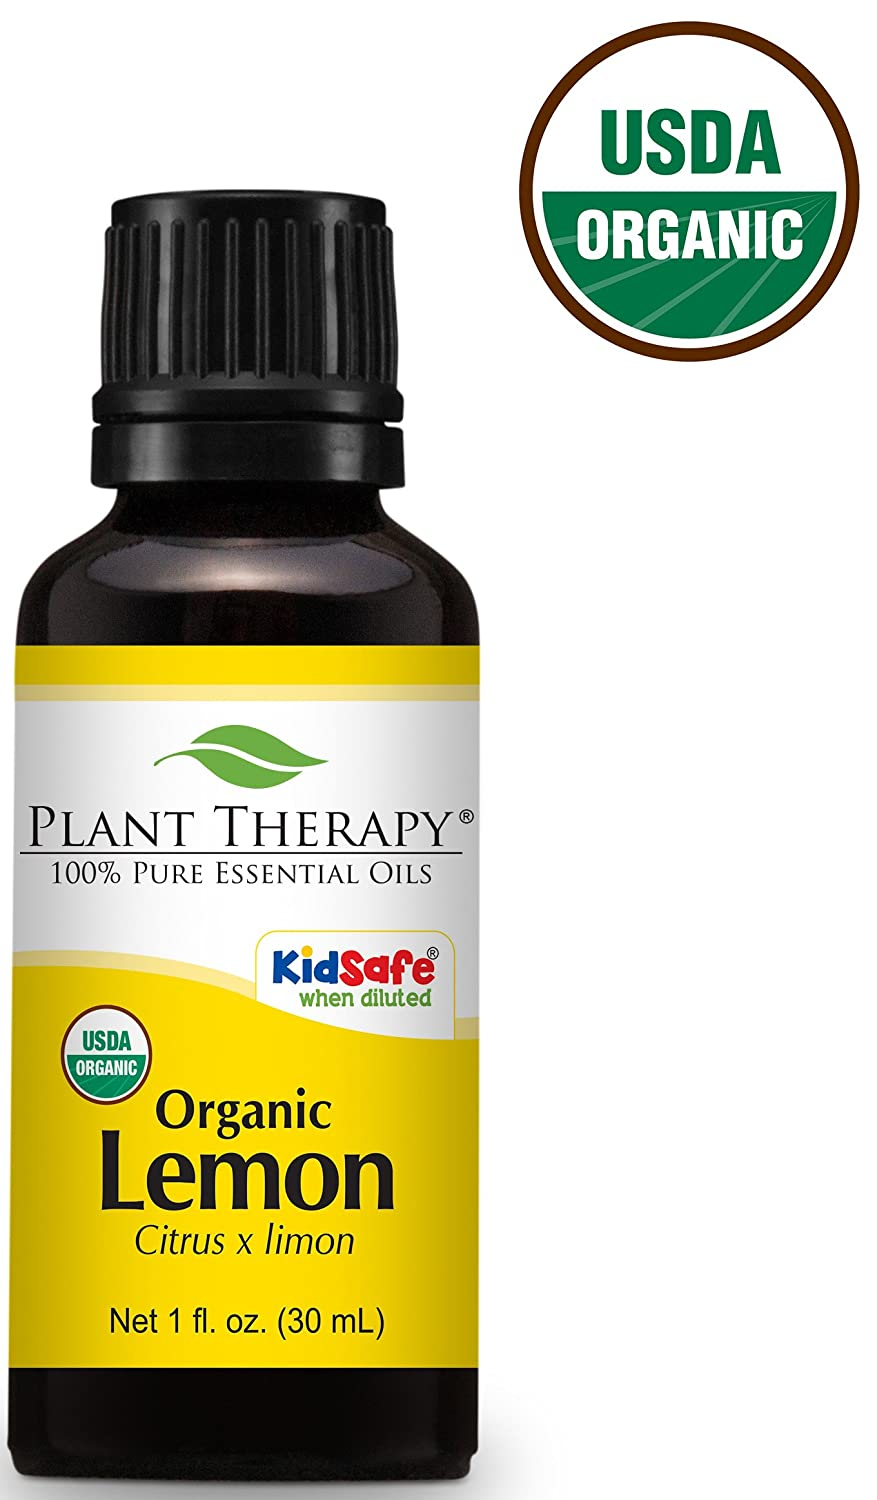 Plant Therapy USDA Certified Organic Lemon Essential Oil. 100% Pure, Undiluted, Therapeutic Grade. 10 ml (1/3 oz). Plant Therapy Inc